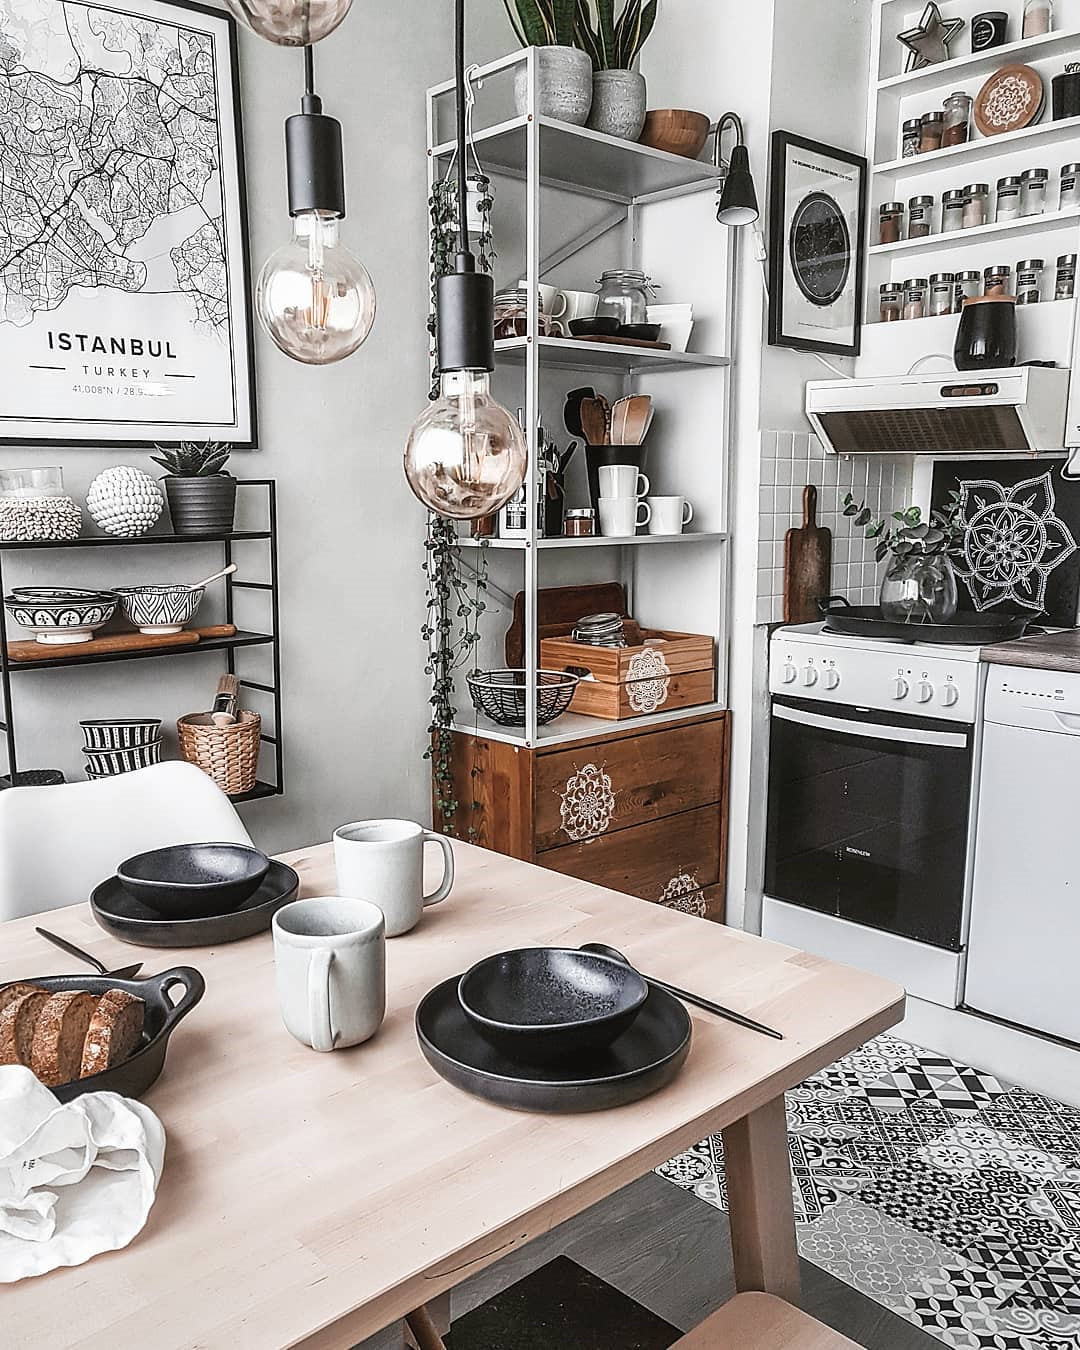 60 Creative Small Kitchen Design And Organization Ideas  #kitchens #kitchendesign #kitchenorganization #SmallKitchen